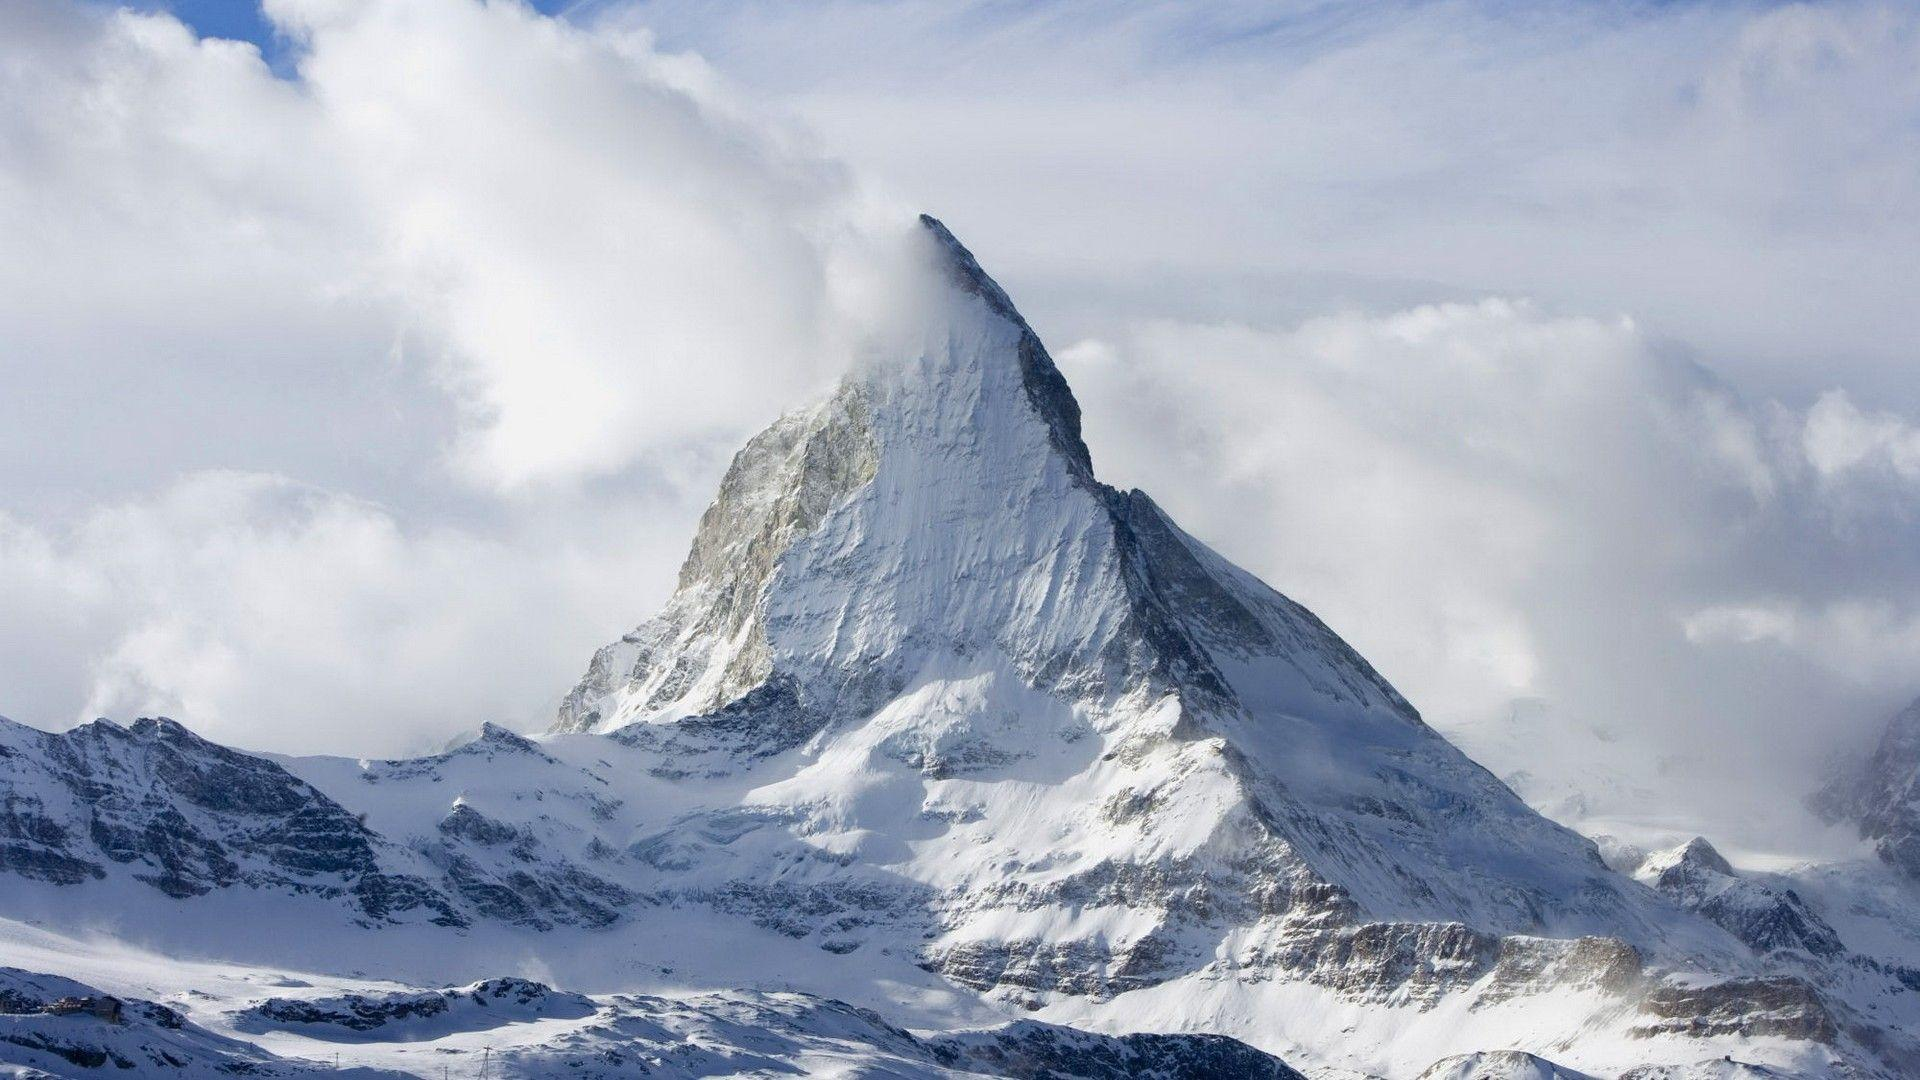 Matterhorn wallpapers wallpaper cave - Hd snow mountain wallpaper ...